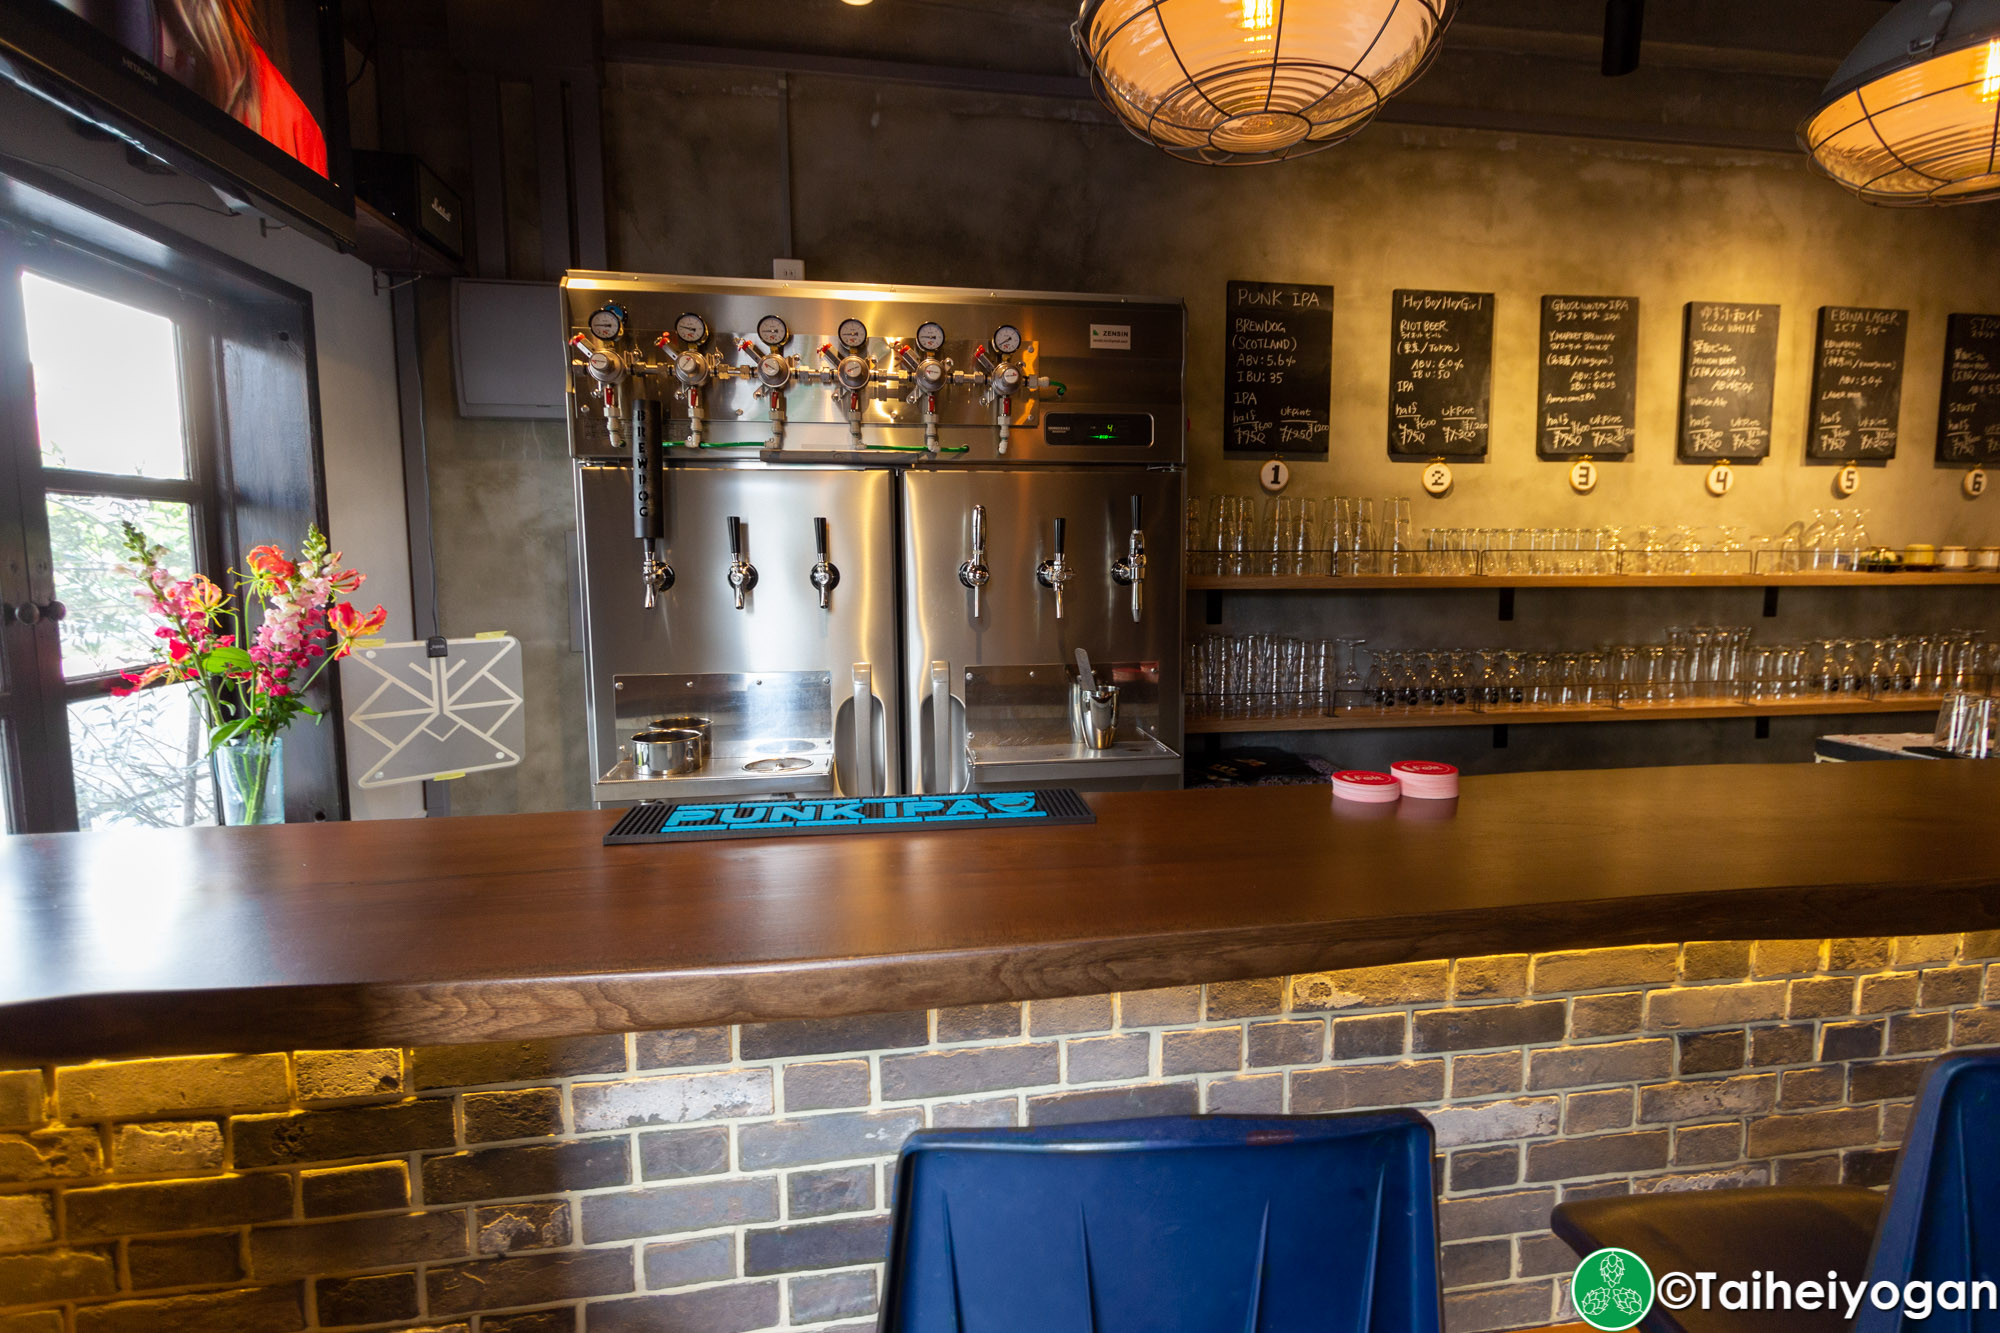 Beerbar Felt - Interior - Craft Beer Taps